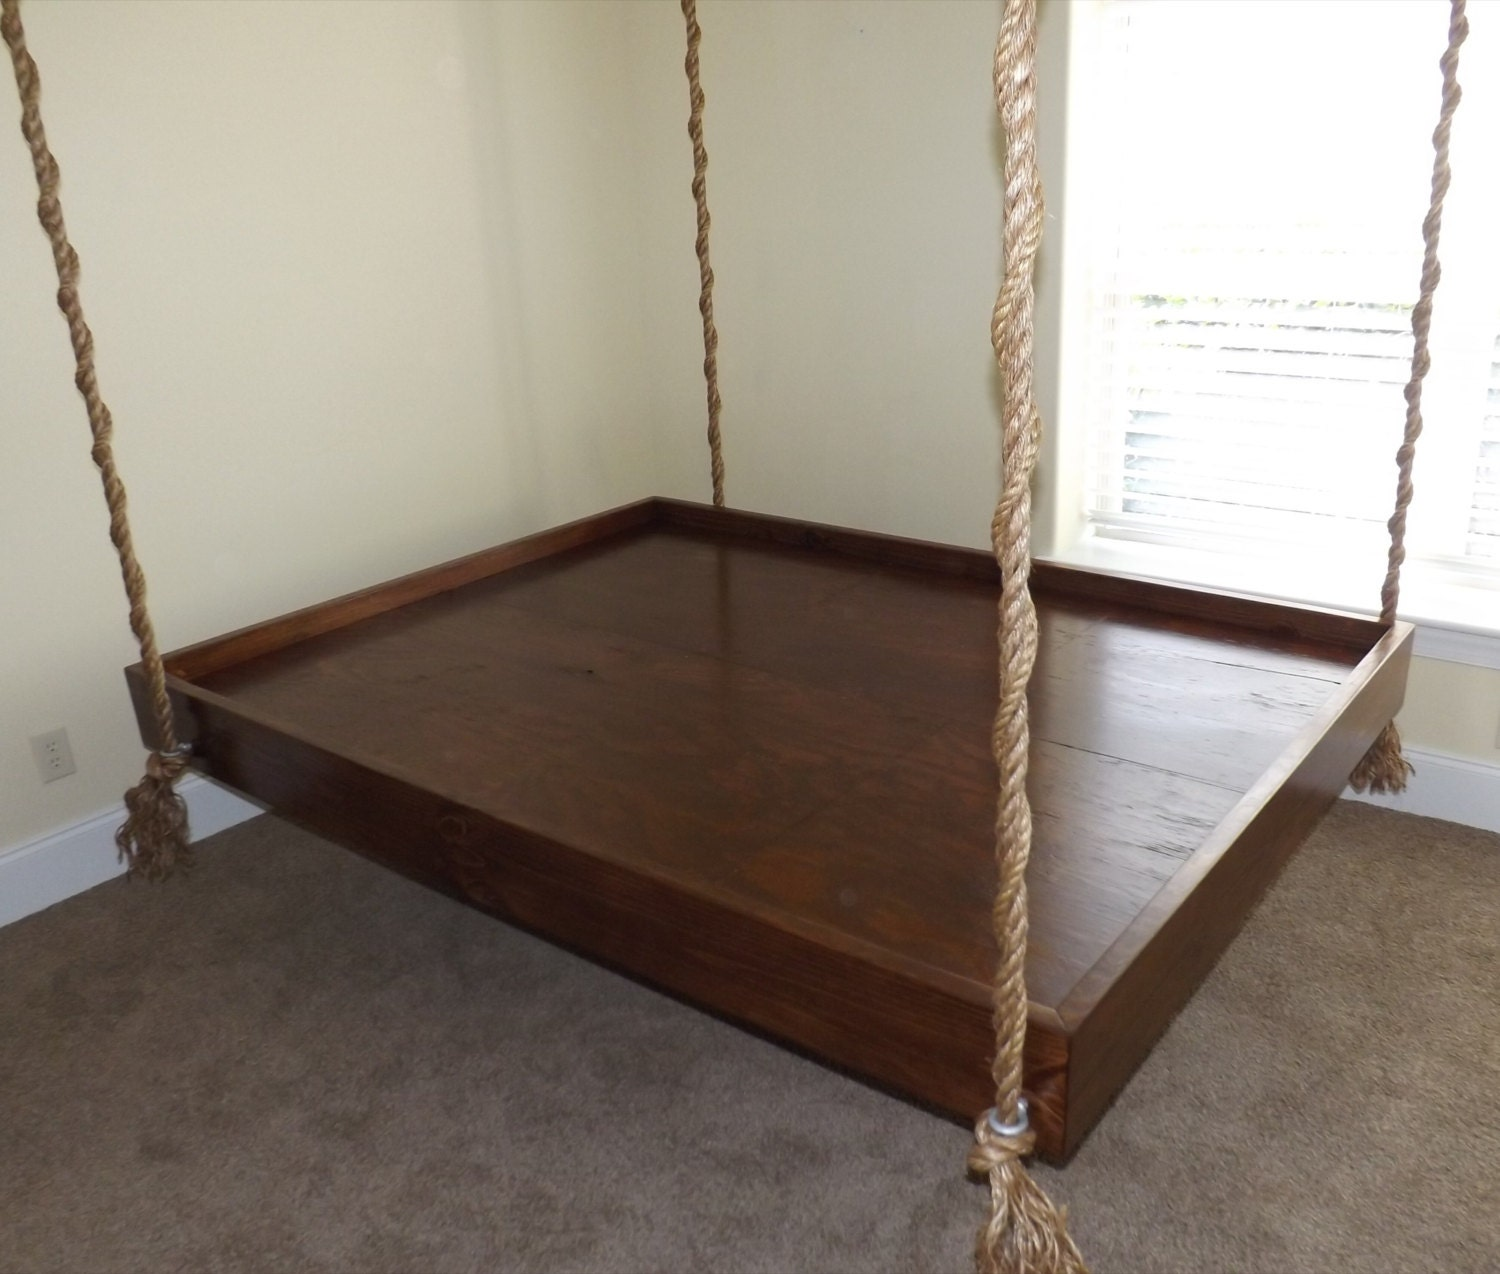 wadmalw hanging bed by carolinahangingbeds on etsy